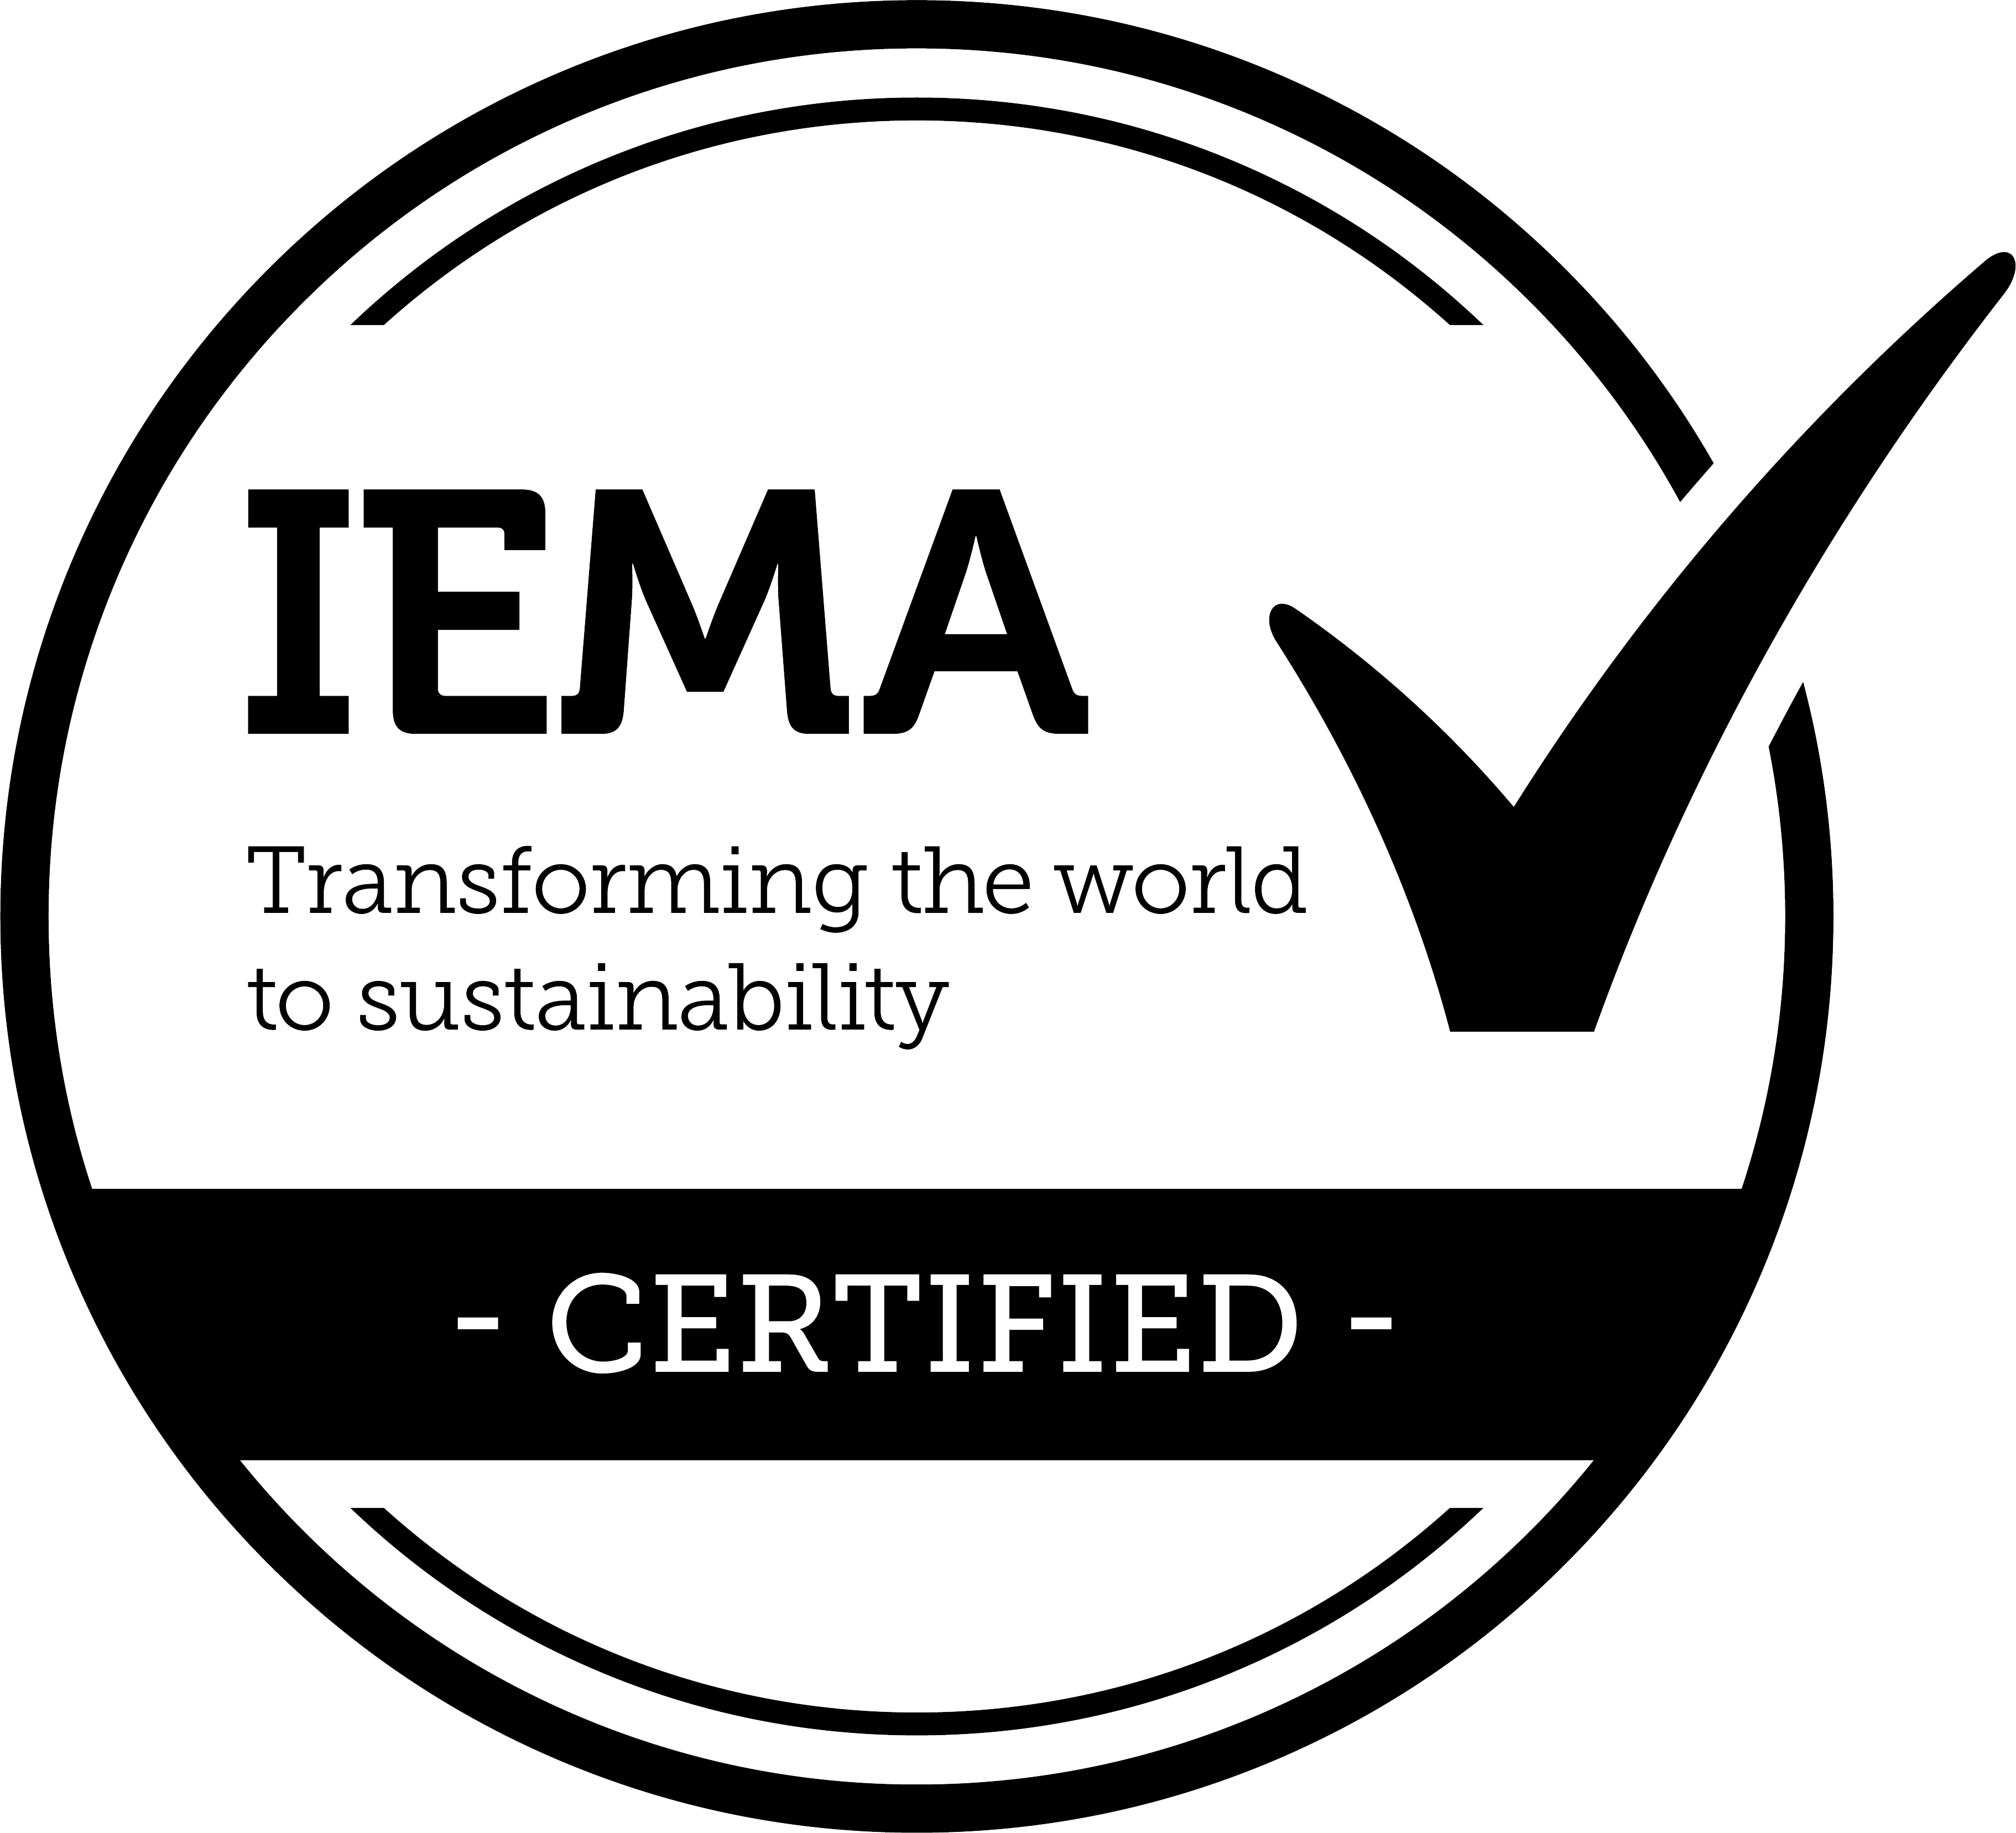 Certified Tutor for the online IEMA Foundation Certificate in Environmental Management